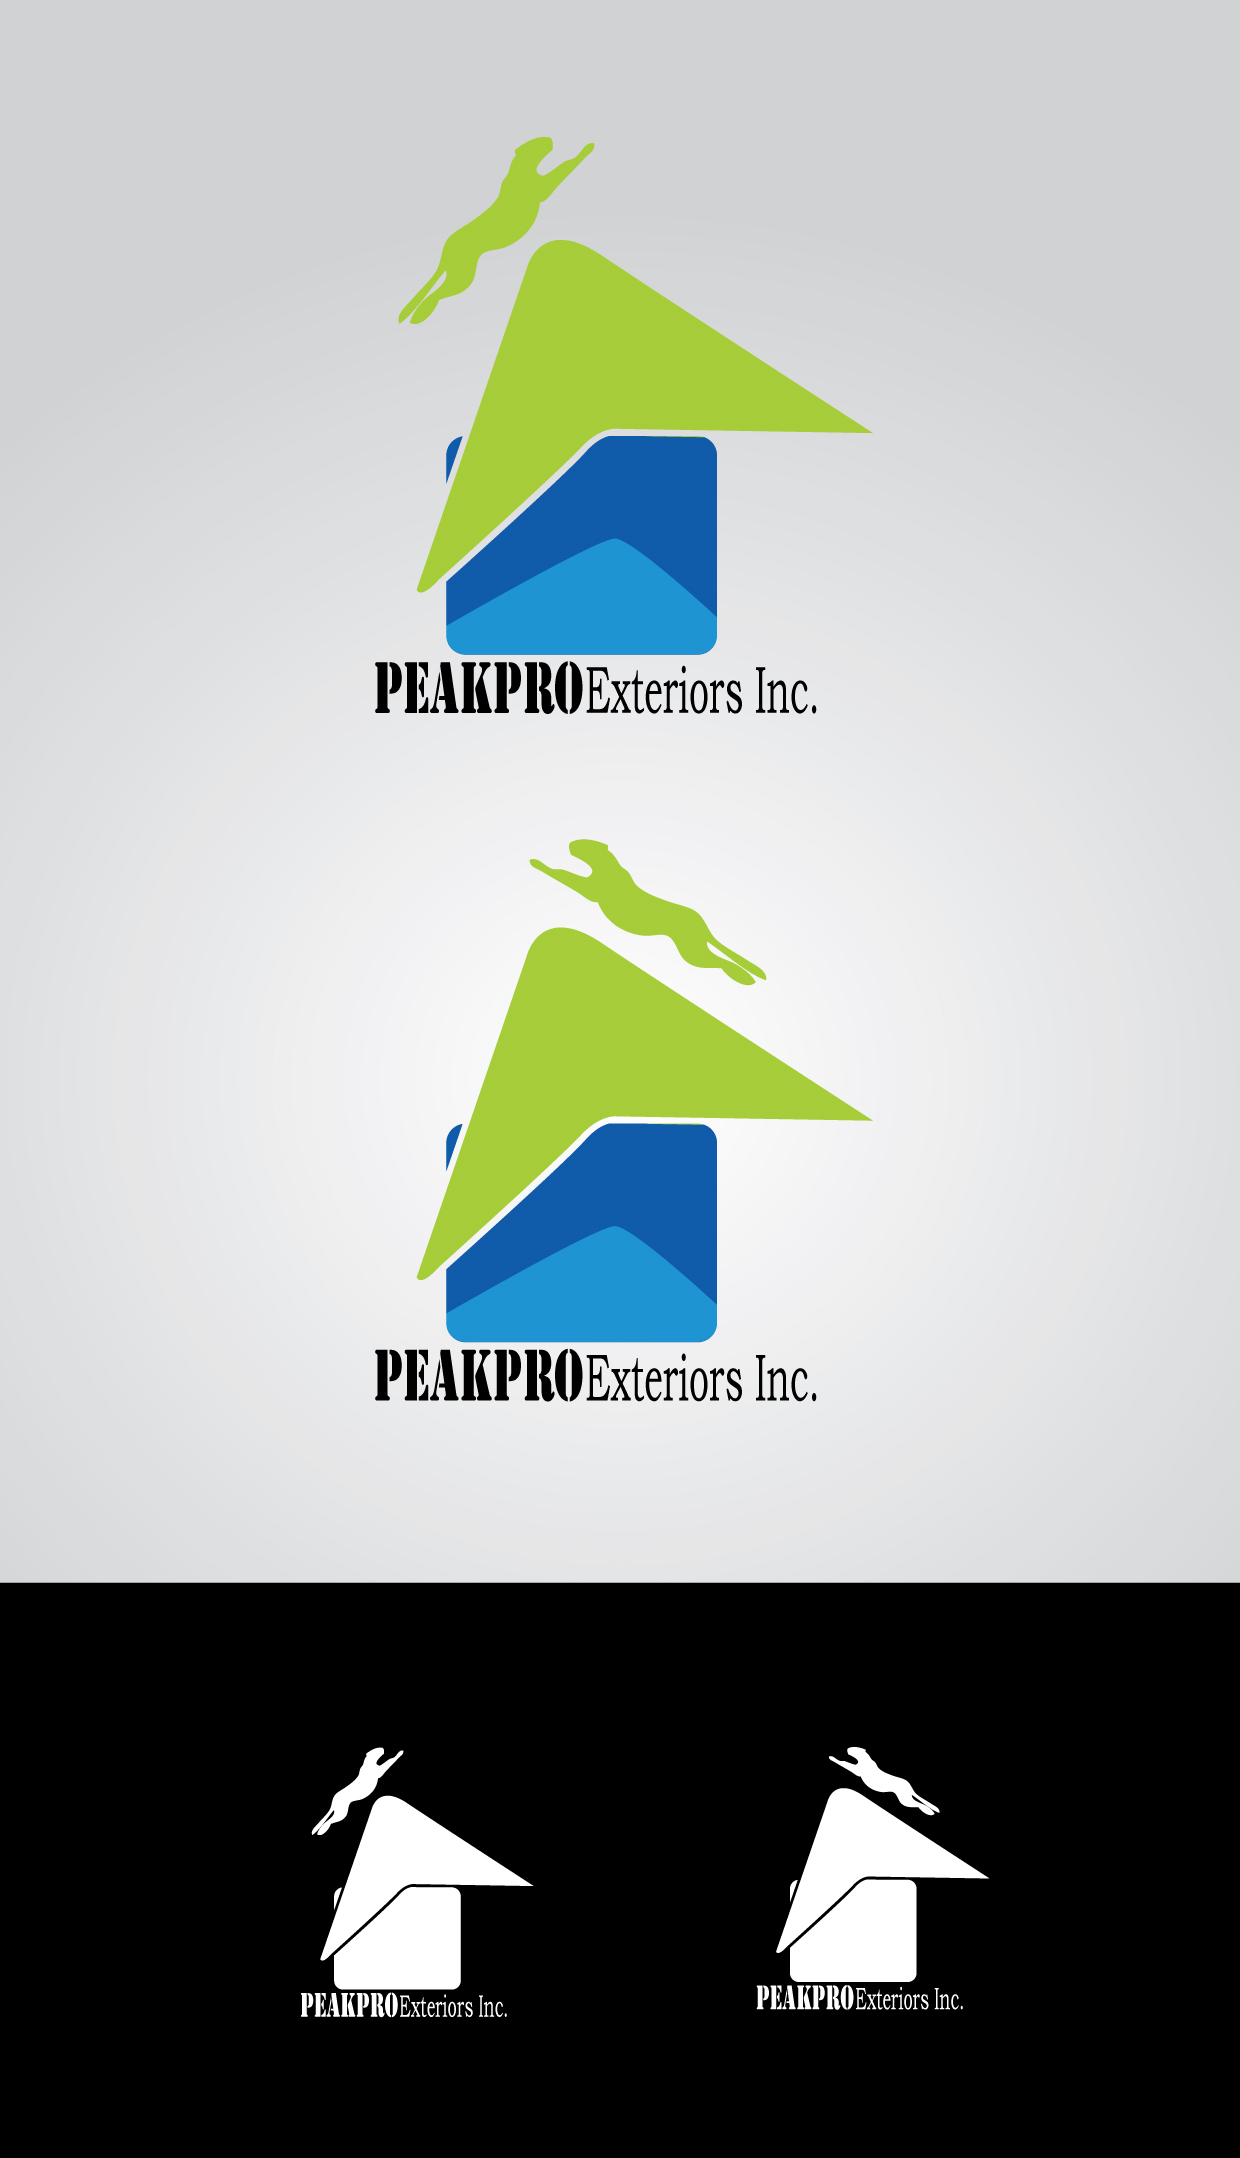 Logo Design by mediaproductionart - Entry No. 105 in the Logo Design Contest Captivating Logo Design for Peakpro Exteriors Inc..